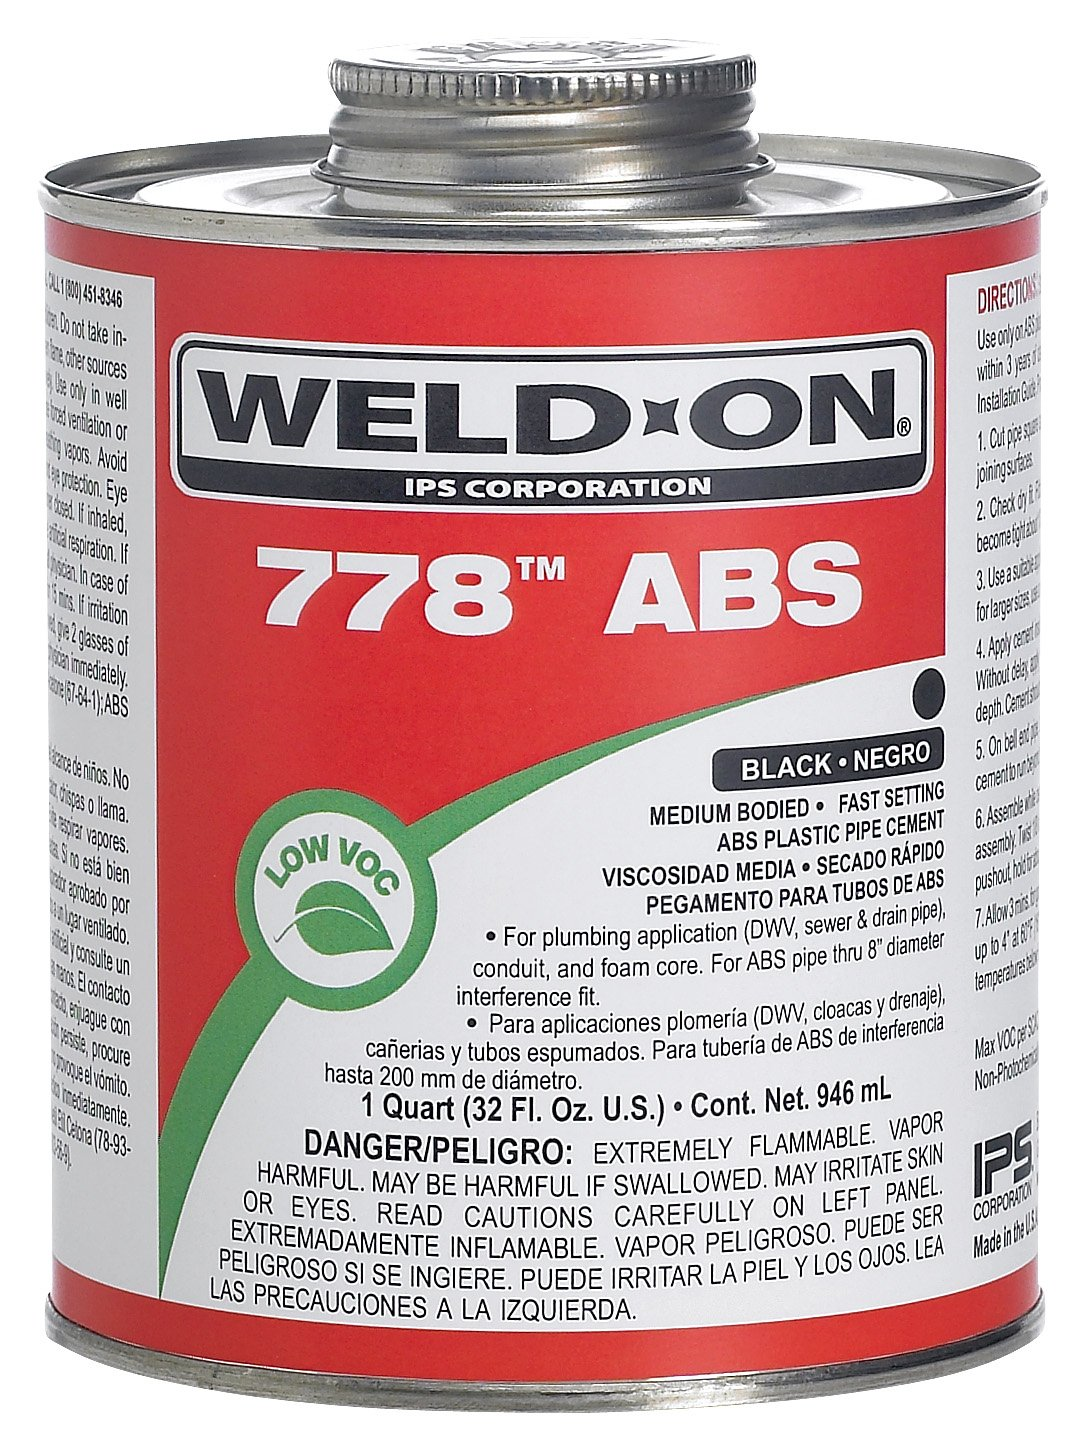 Weld-On 13534 Black 778 Medium-Bodied ABS Professional Plumbing-Grade Cement, Fast-Setting, Regular-VOC, 1 pint Can with Applicator Cap